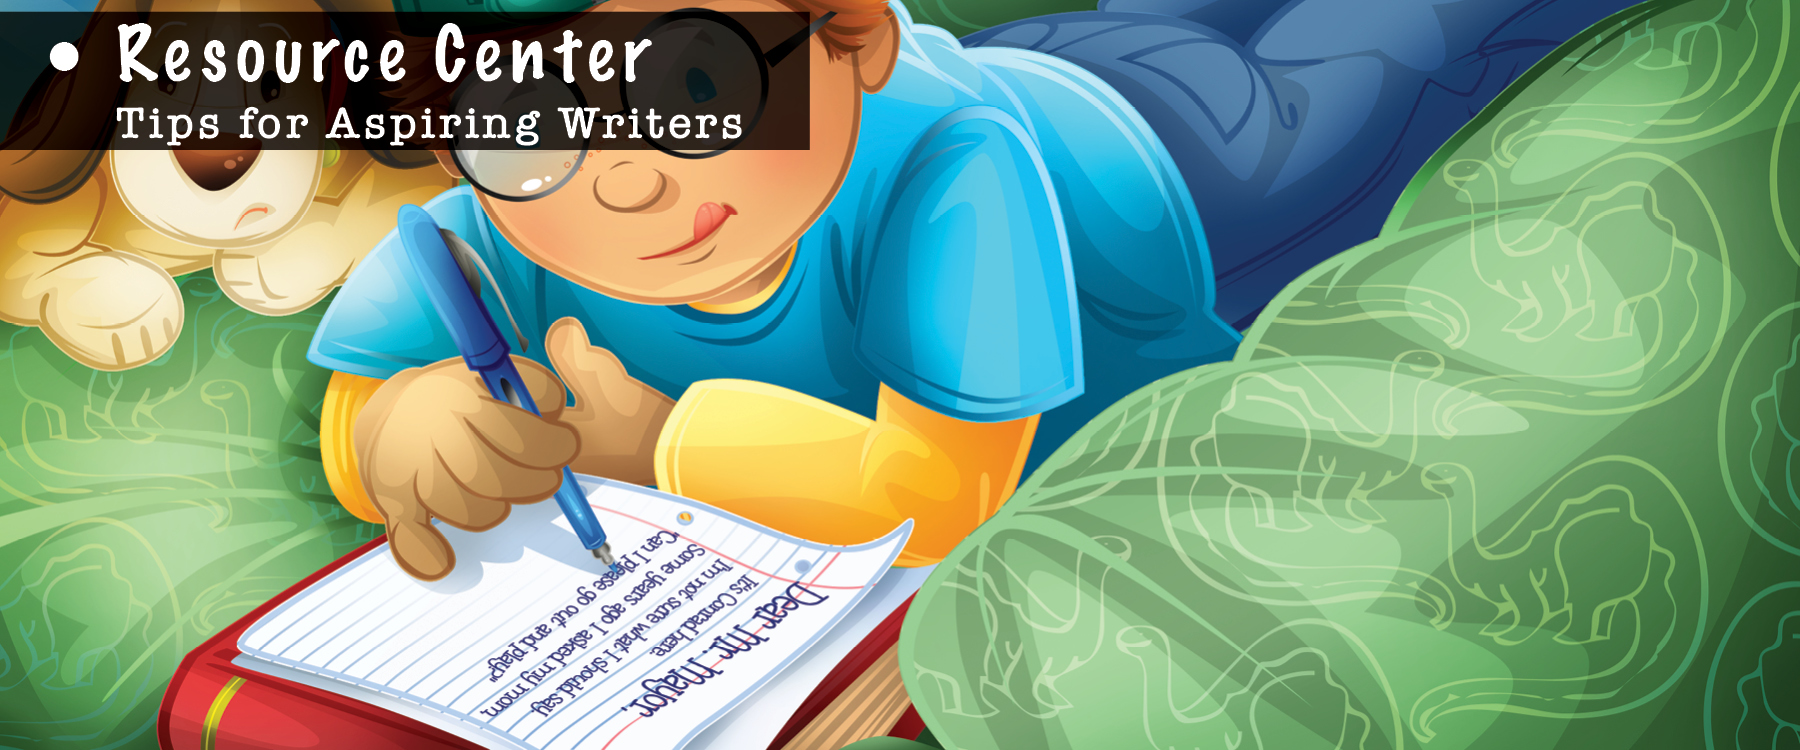 banners-just-us-books-resource-center-tips-for-aspiring-writers-0002.jpg